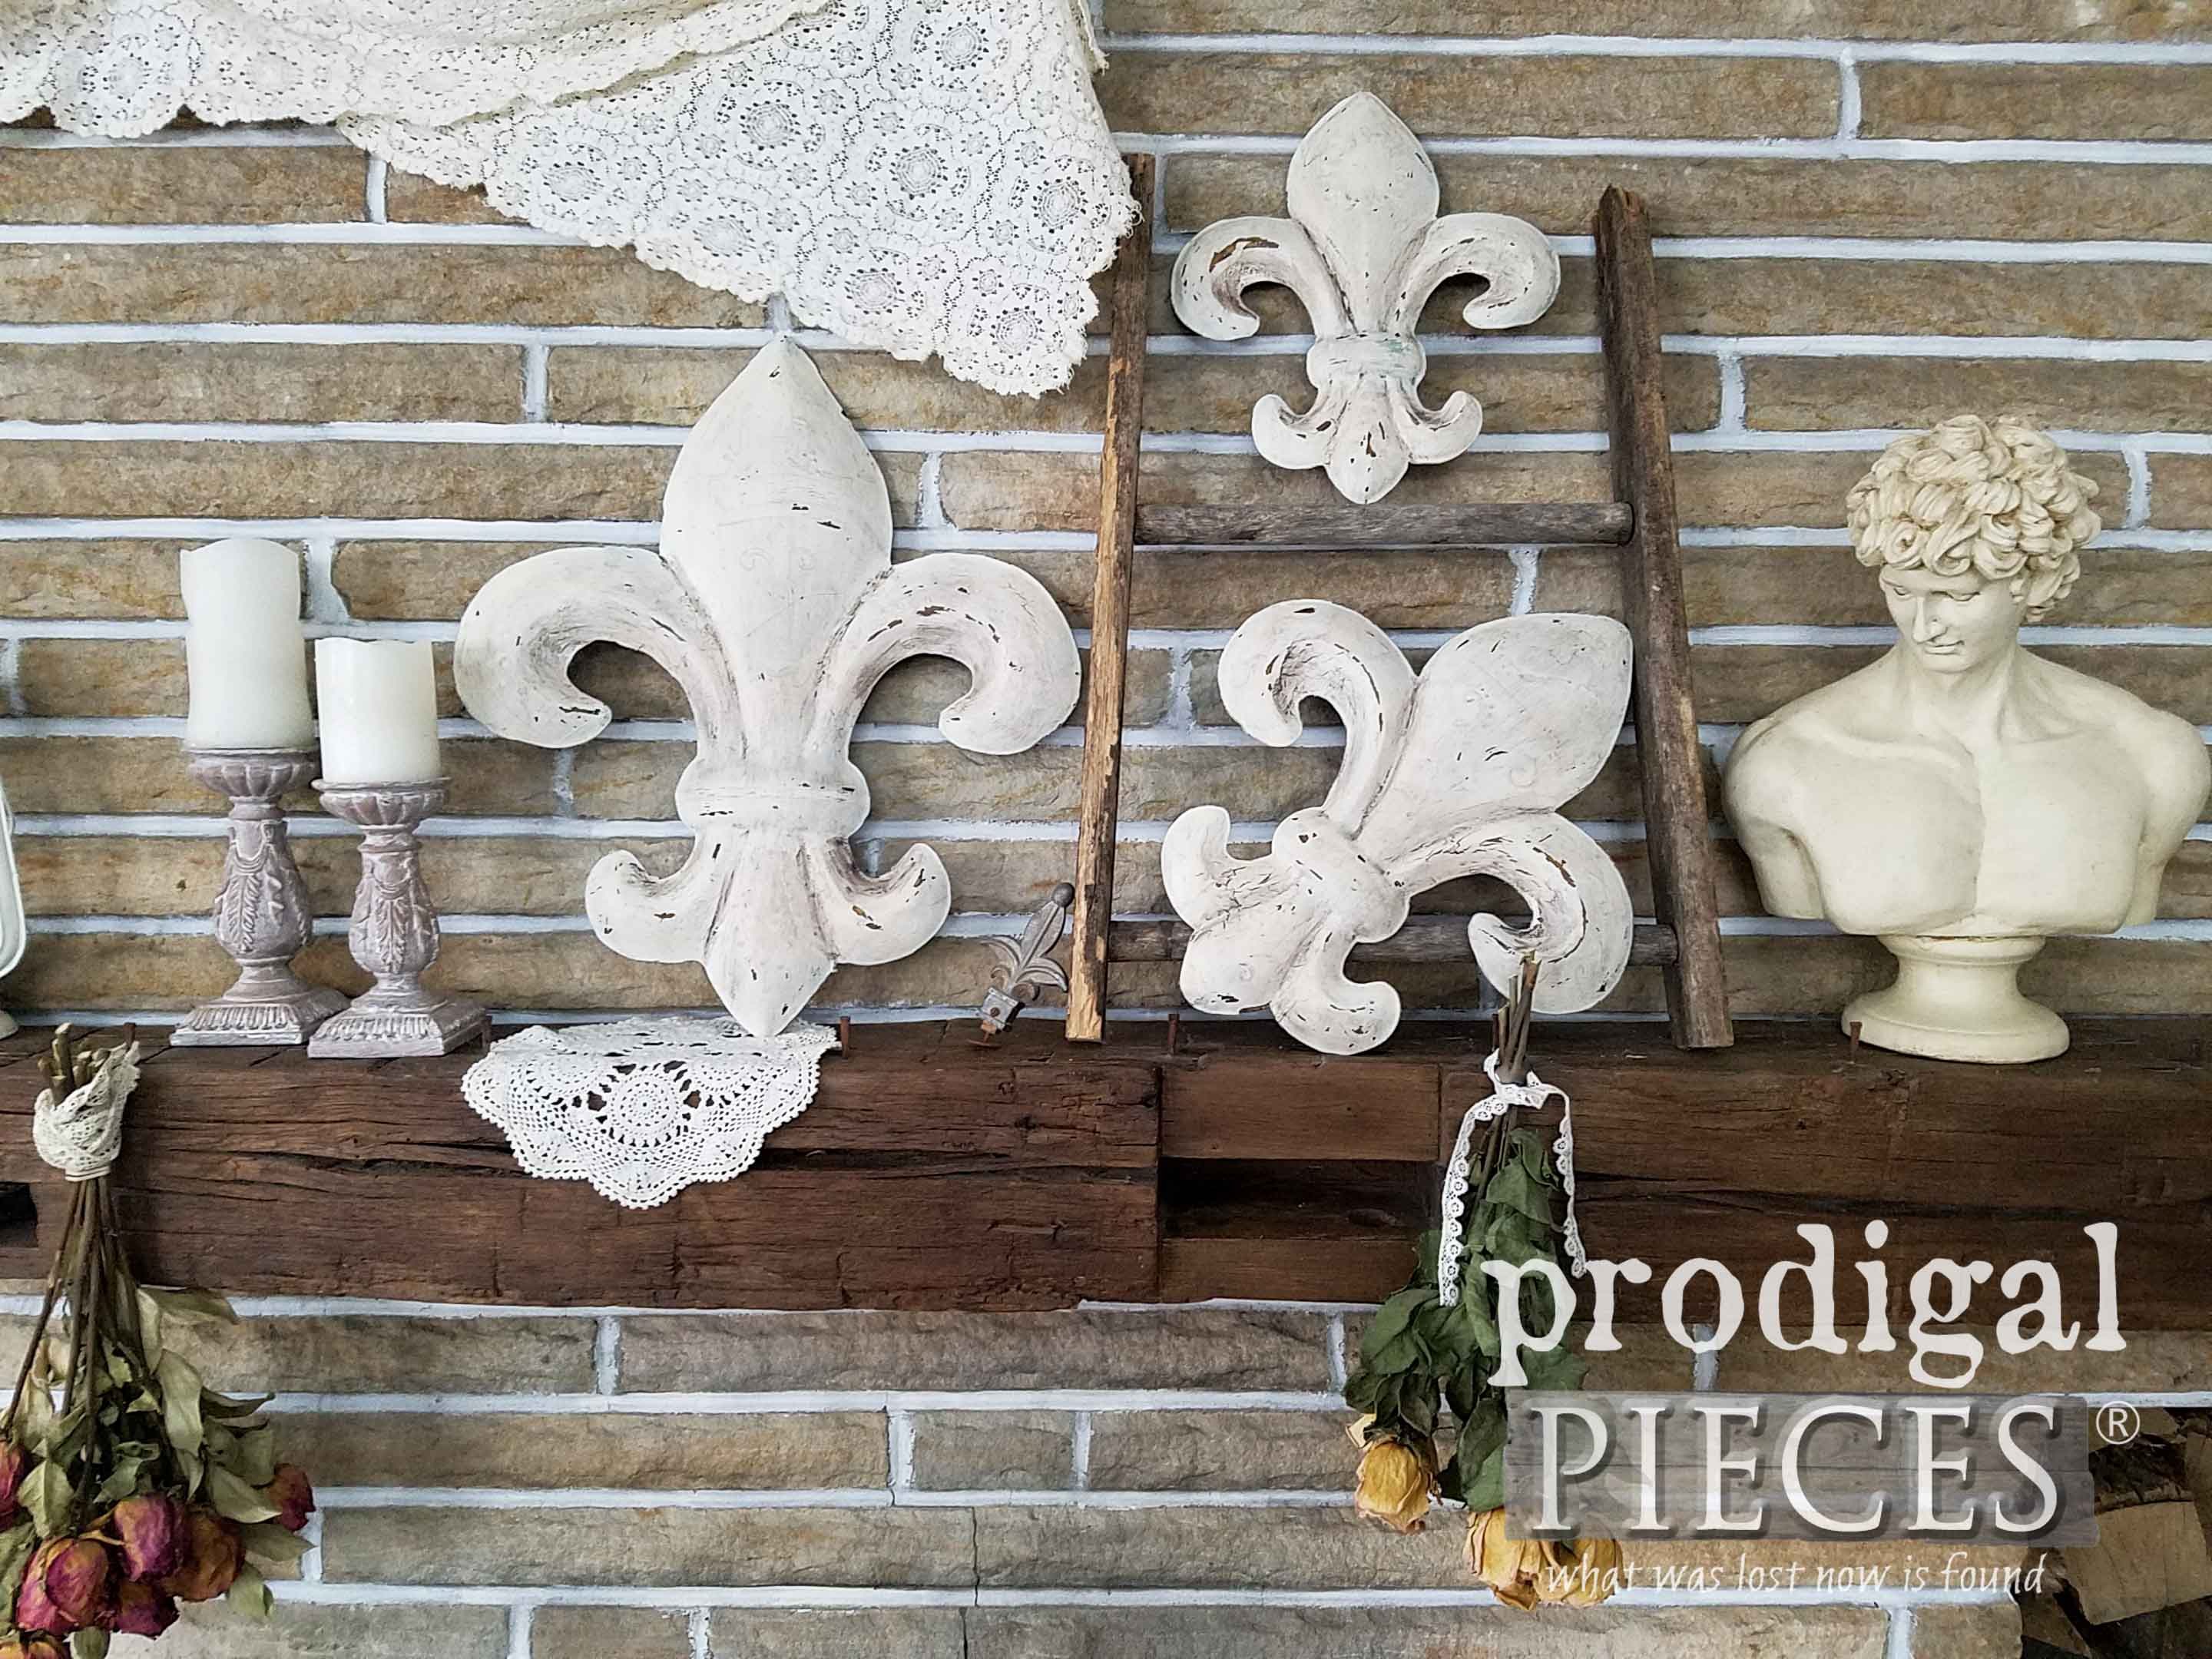 2 Piece Metal Wall Decor Sets By Fleur De Lis Living With Regard To Most Popular Fleur De Lis Wall Art ~ From Thrifted To Fabulous – Prodigal Pieces (View 4 of 20)